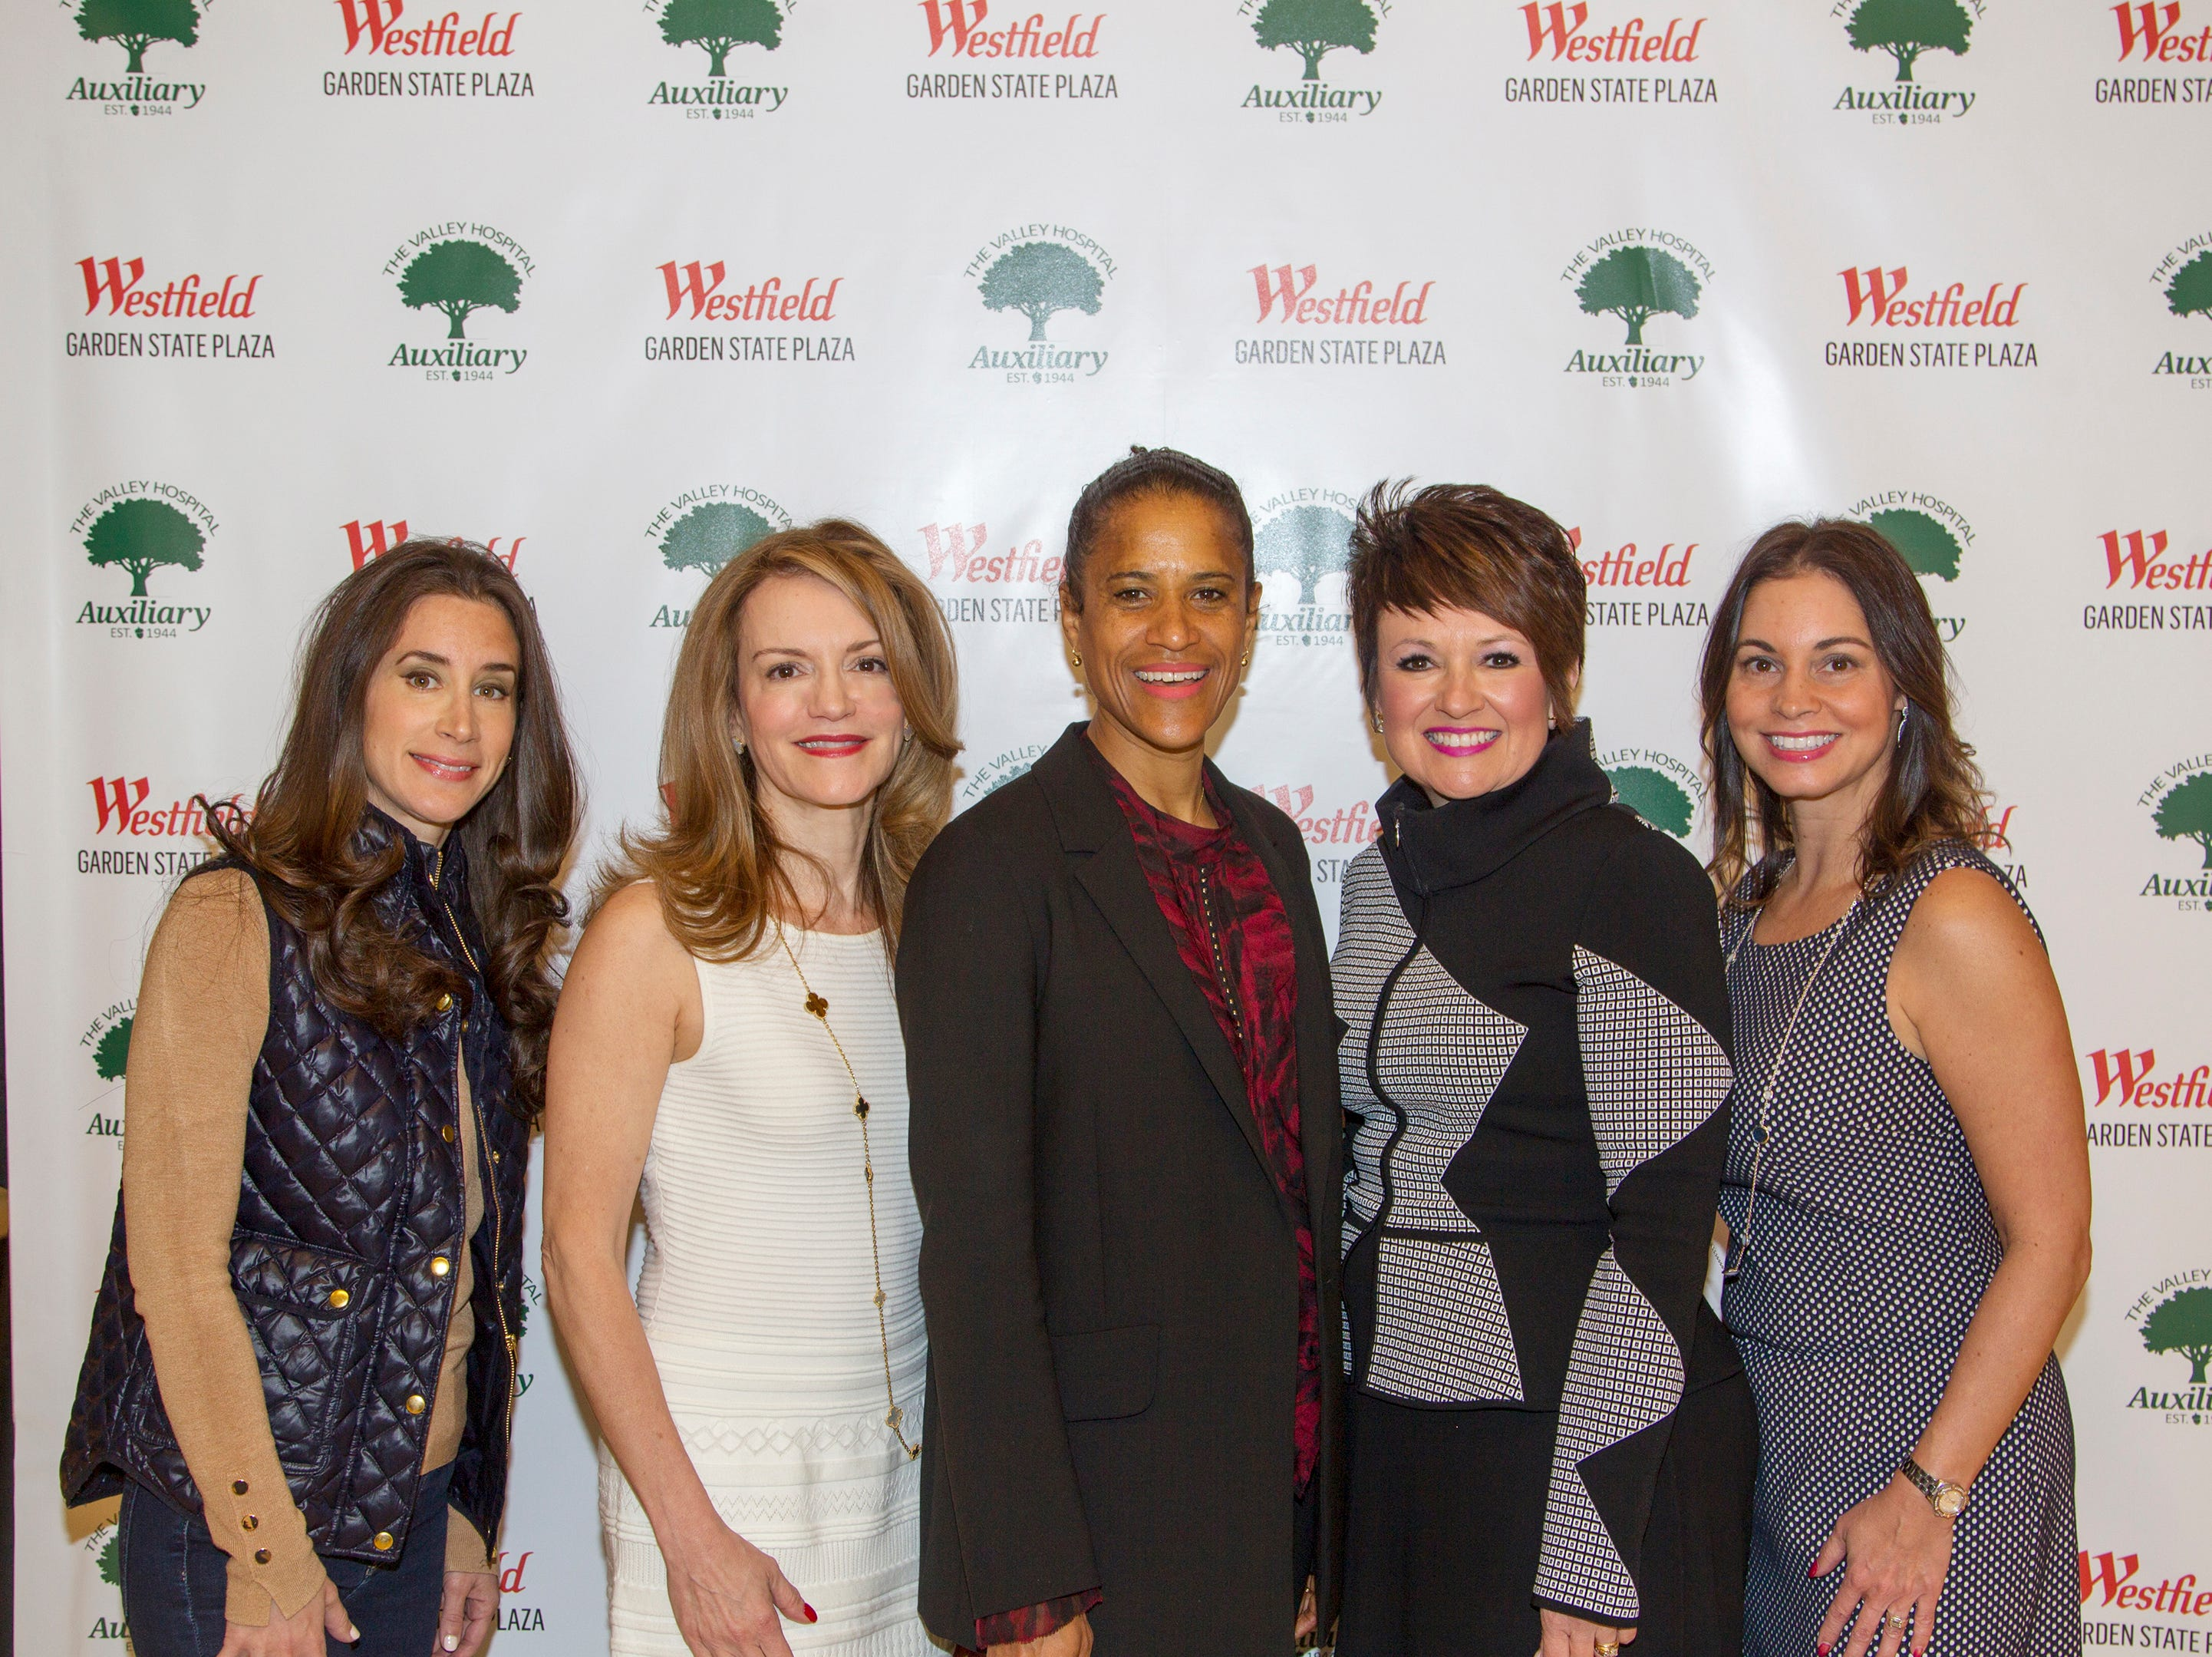 Robyn Stevens, Maria Harper, Isolpe Brielmaier, Nancy Bush, Claudine Siero. Westfield Garden State Plaza held its Meet the Artist & Trend Show benefitting The Valley Hospital Auxillary Saddle River Branch. 04/03/2019